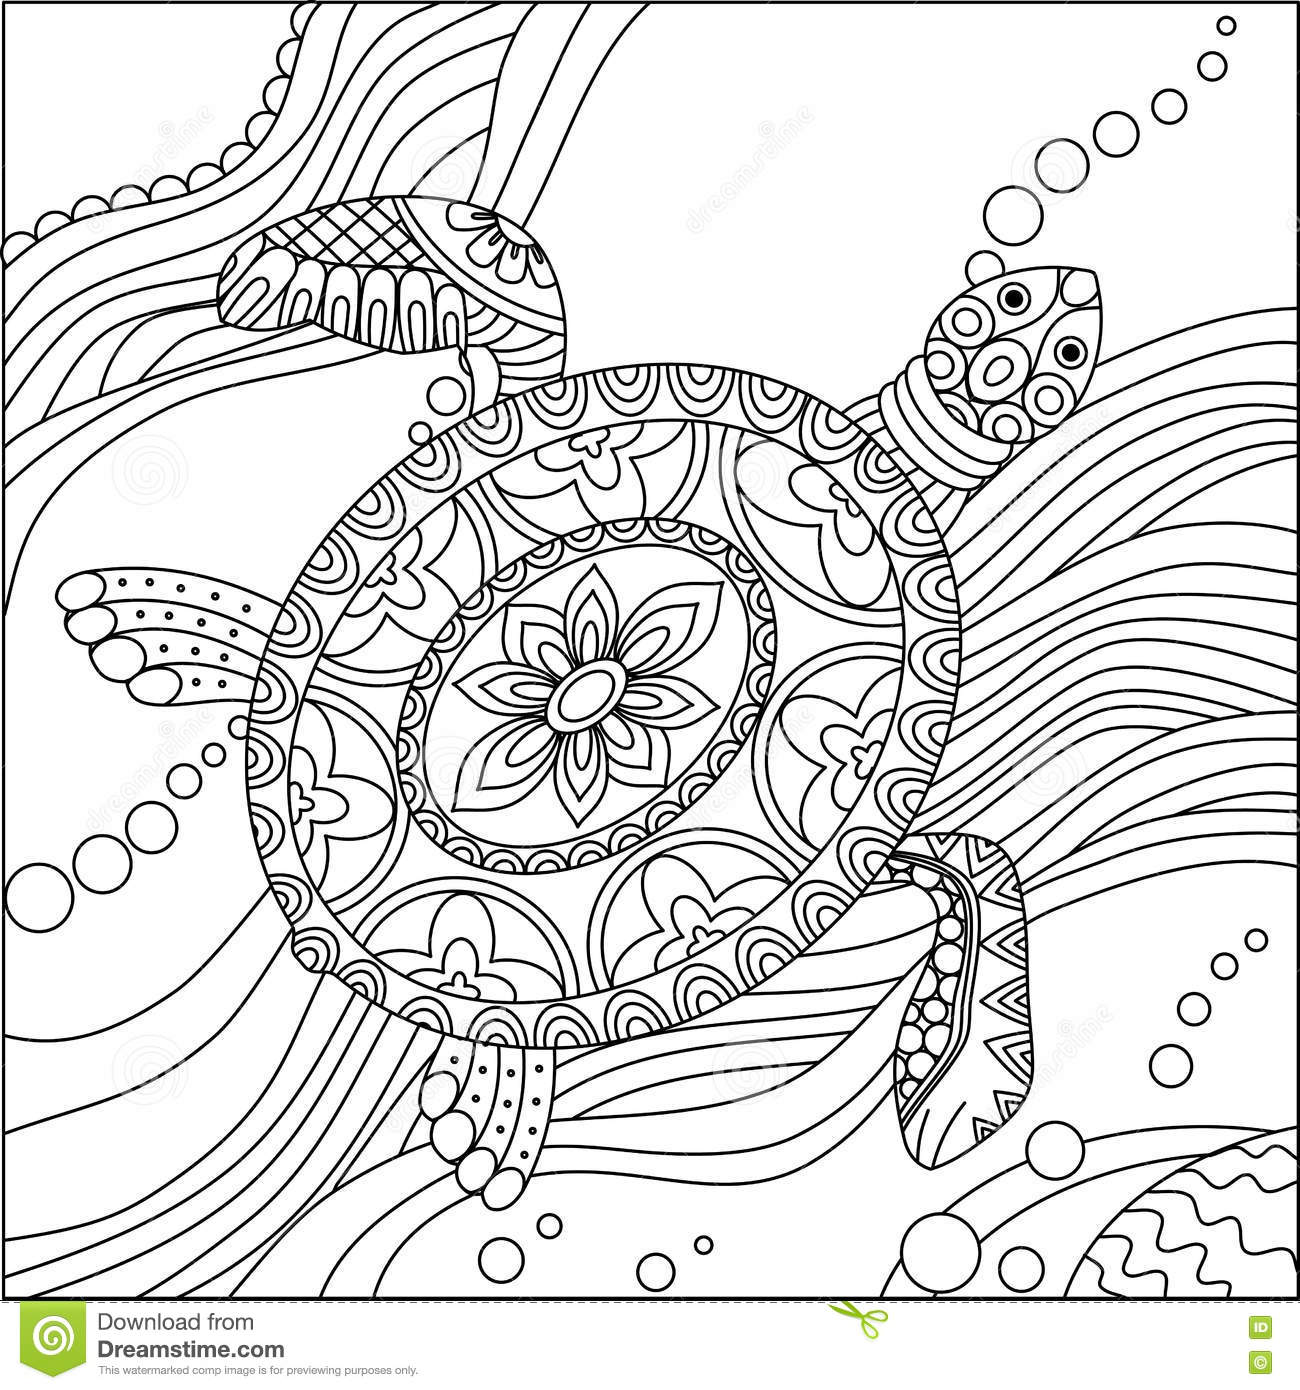 sea turtle coloring stock vector illustration of drawing turtles doodle zentangle drawn coloring pages Sea Turtles Coloring Page